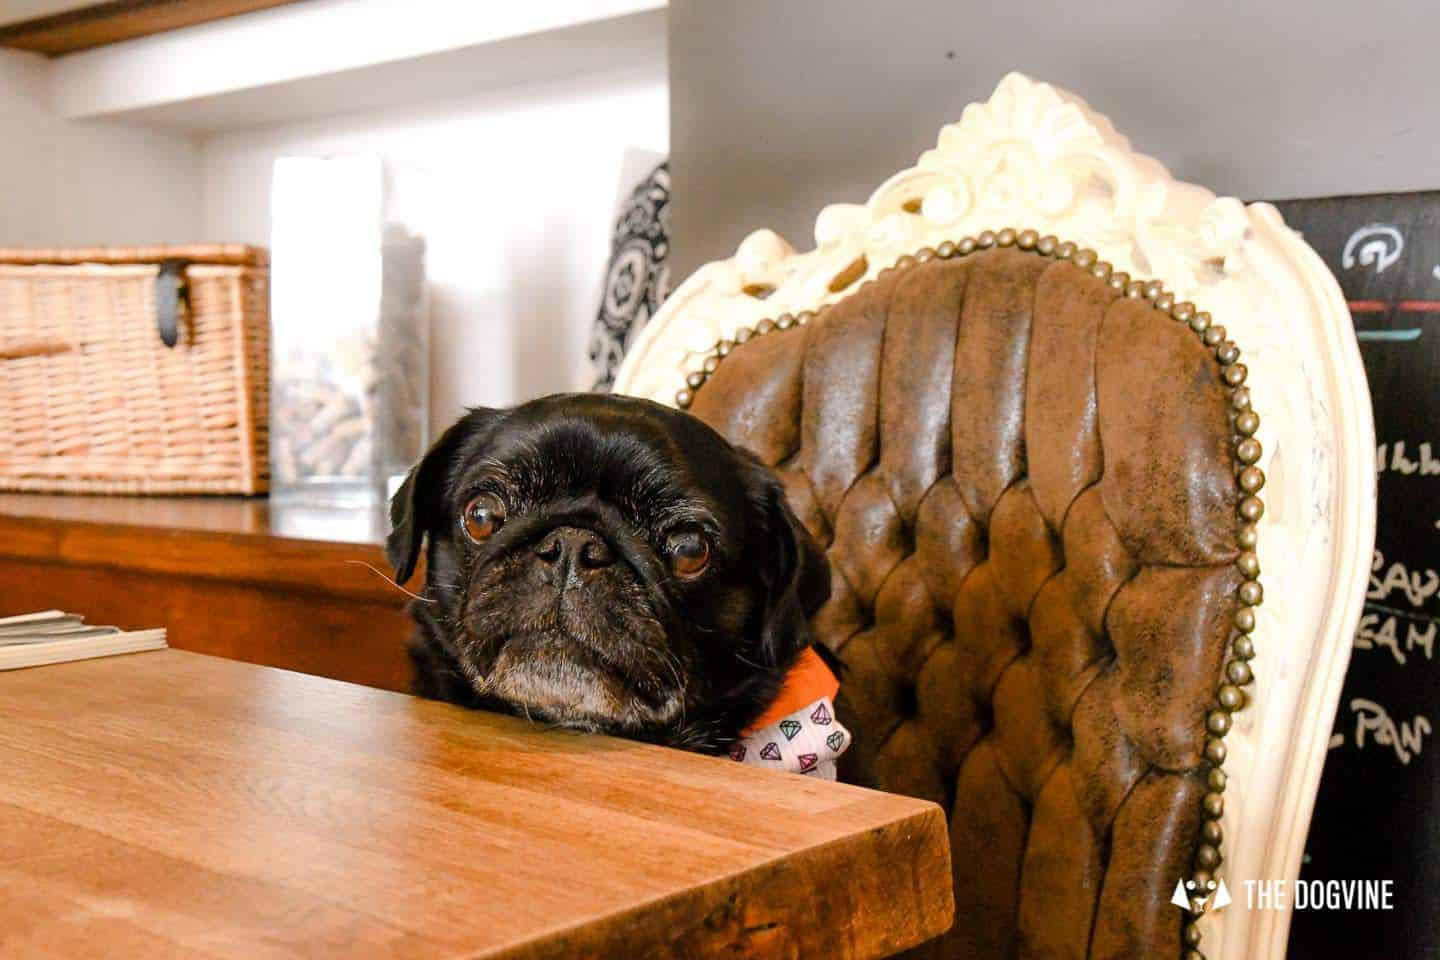 My Dog-friendly London Clapham & Battersea By Hemingway The Pug Number 22 North Street 3